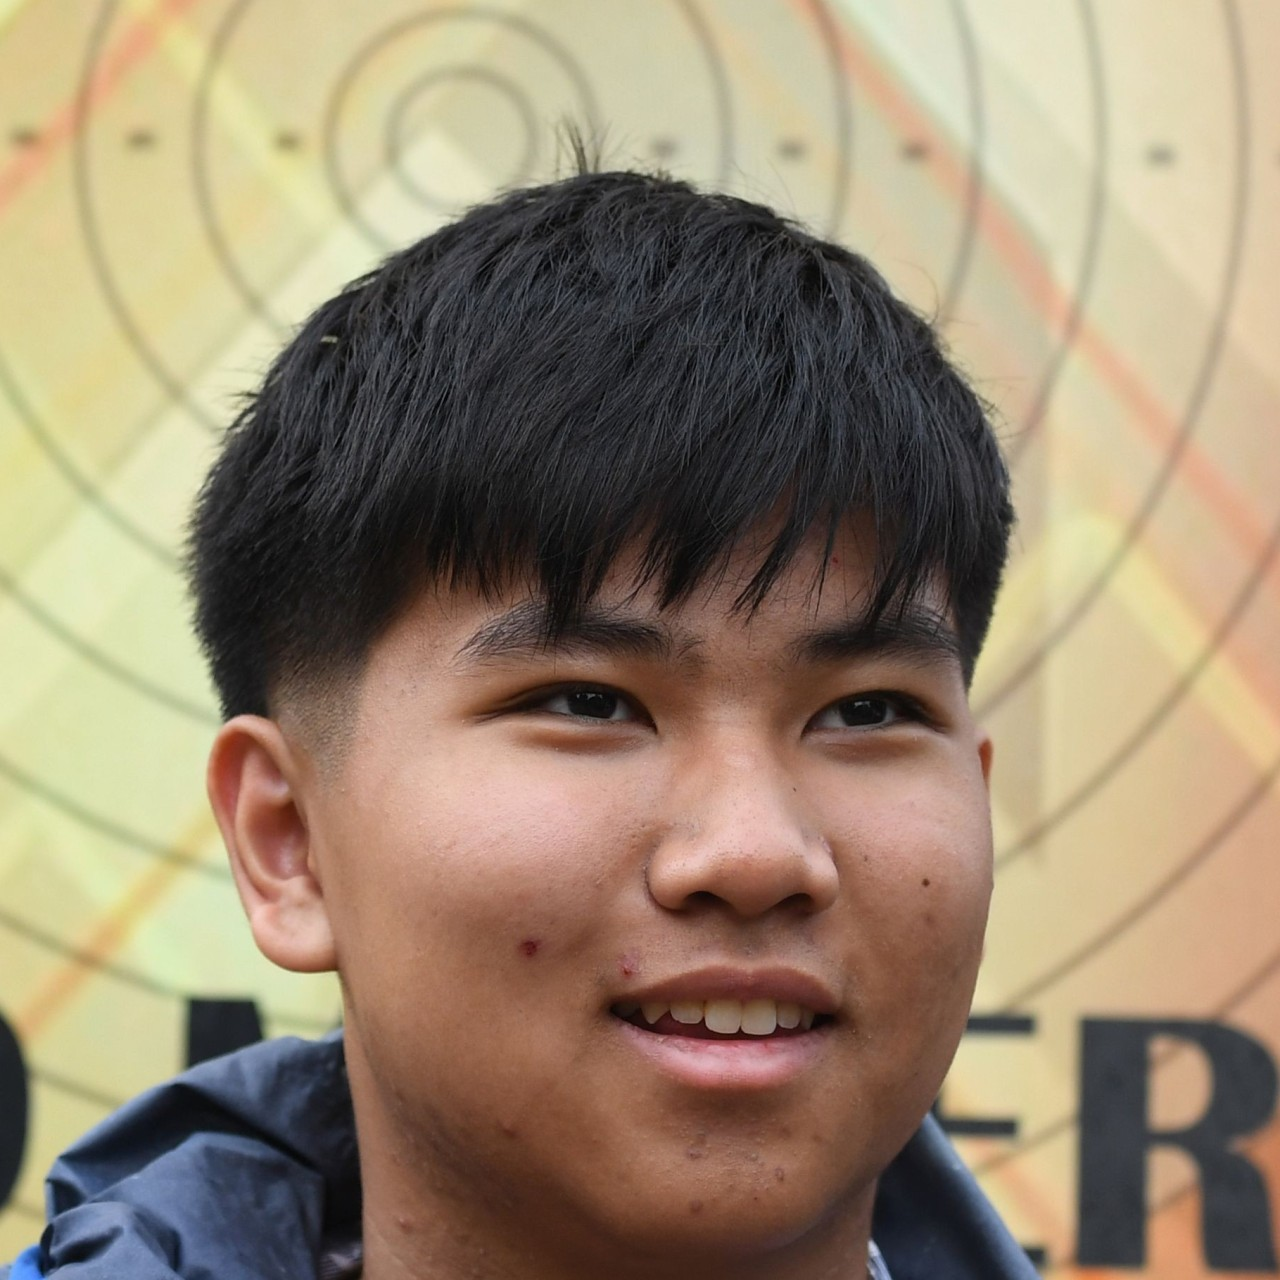 Thailand's James Bond-loving 14-year-old shooting prodigy